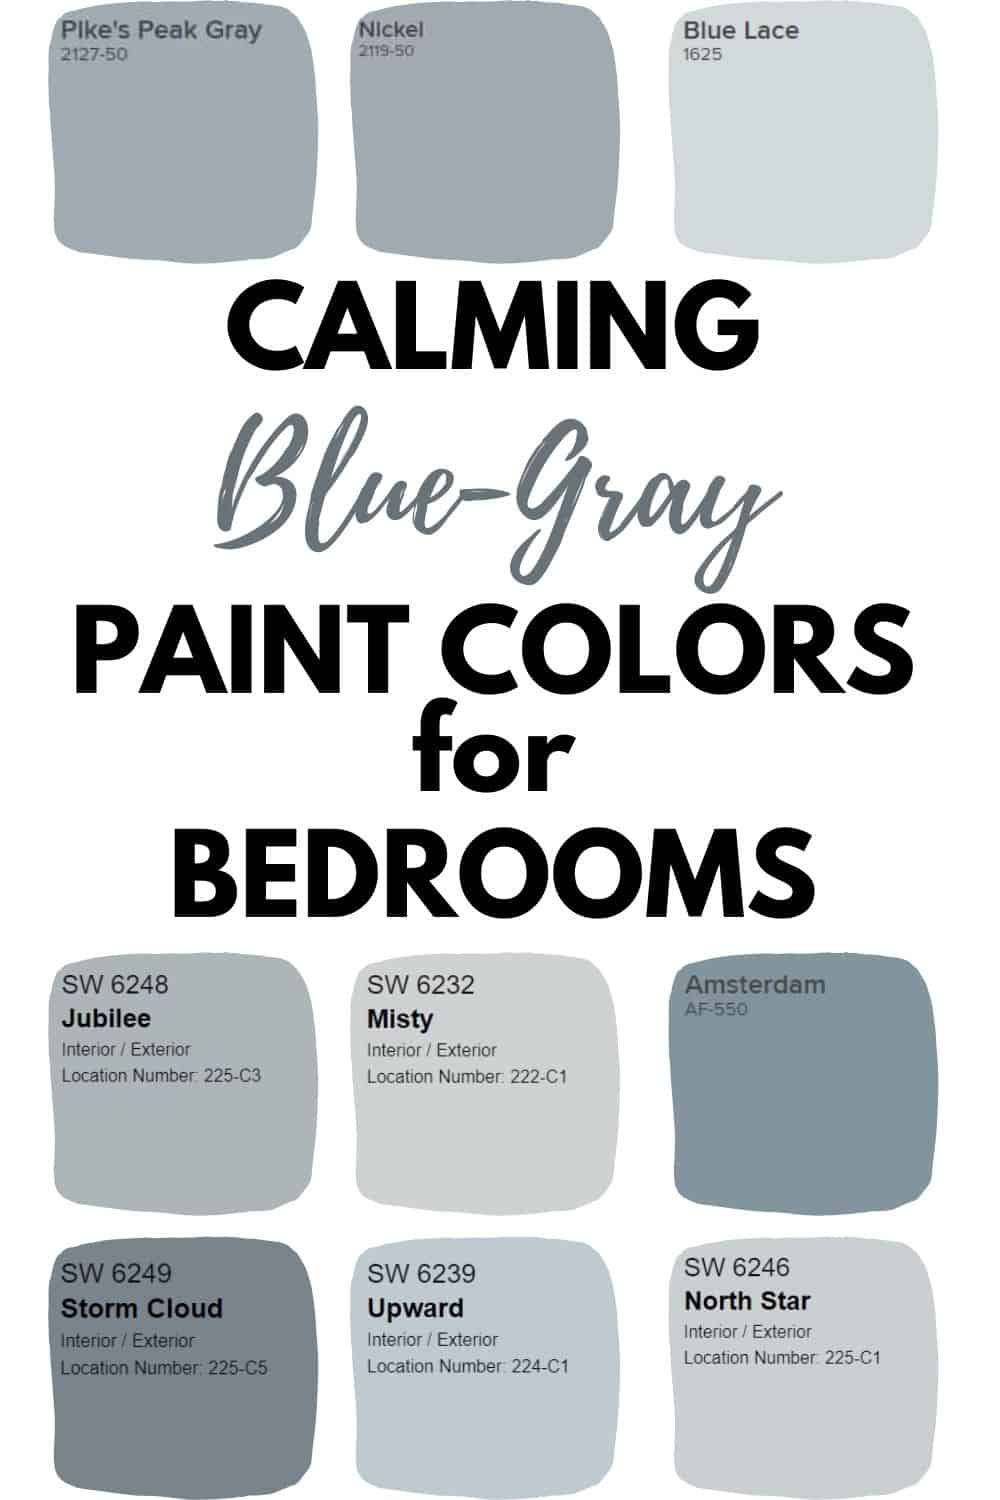 The Absolute Best Blue Gray Paint Colors West Magnolia Charm In 2020 Blue Gray Paint Blue Gray Paint Colors Grey Paint Colors